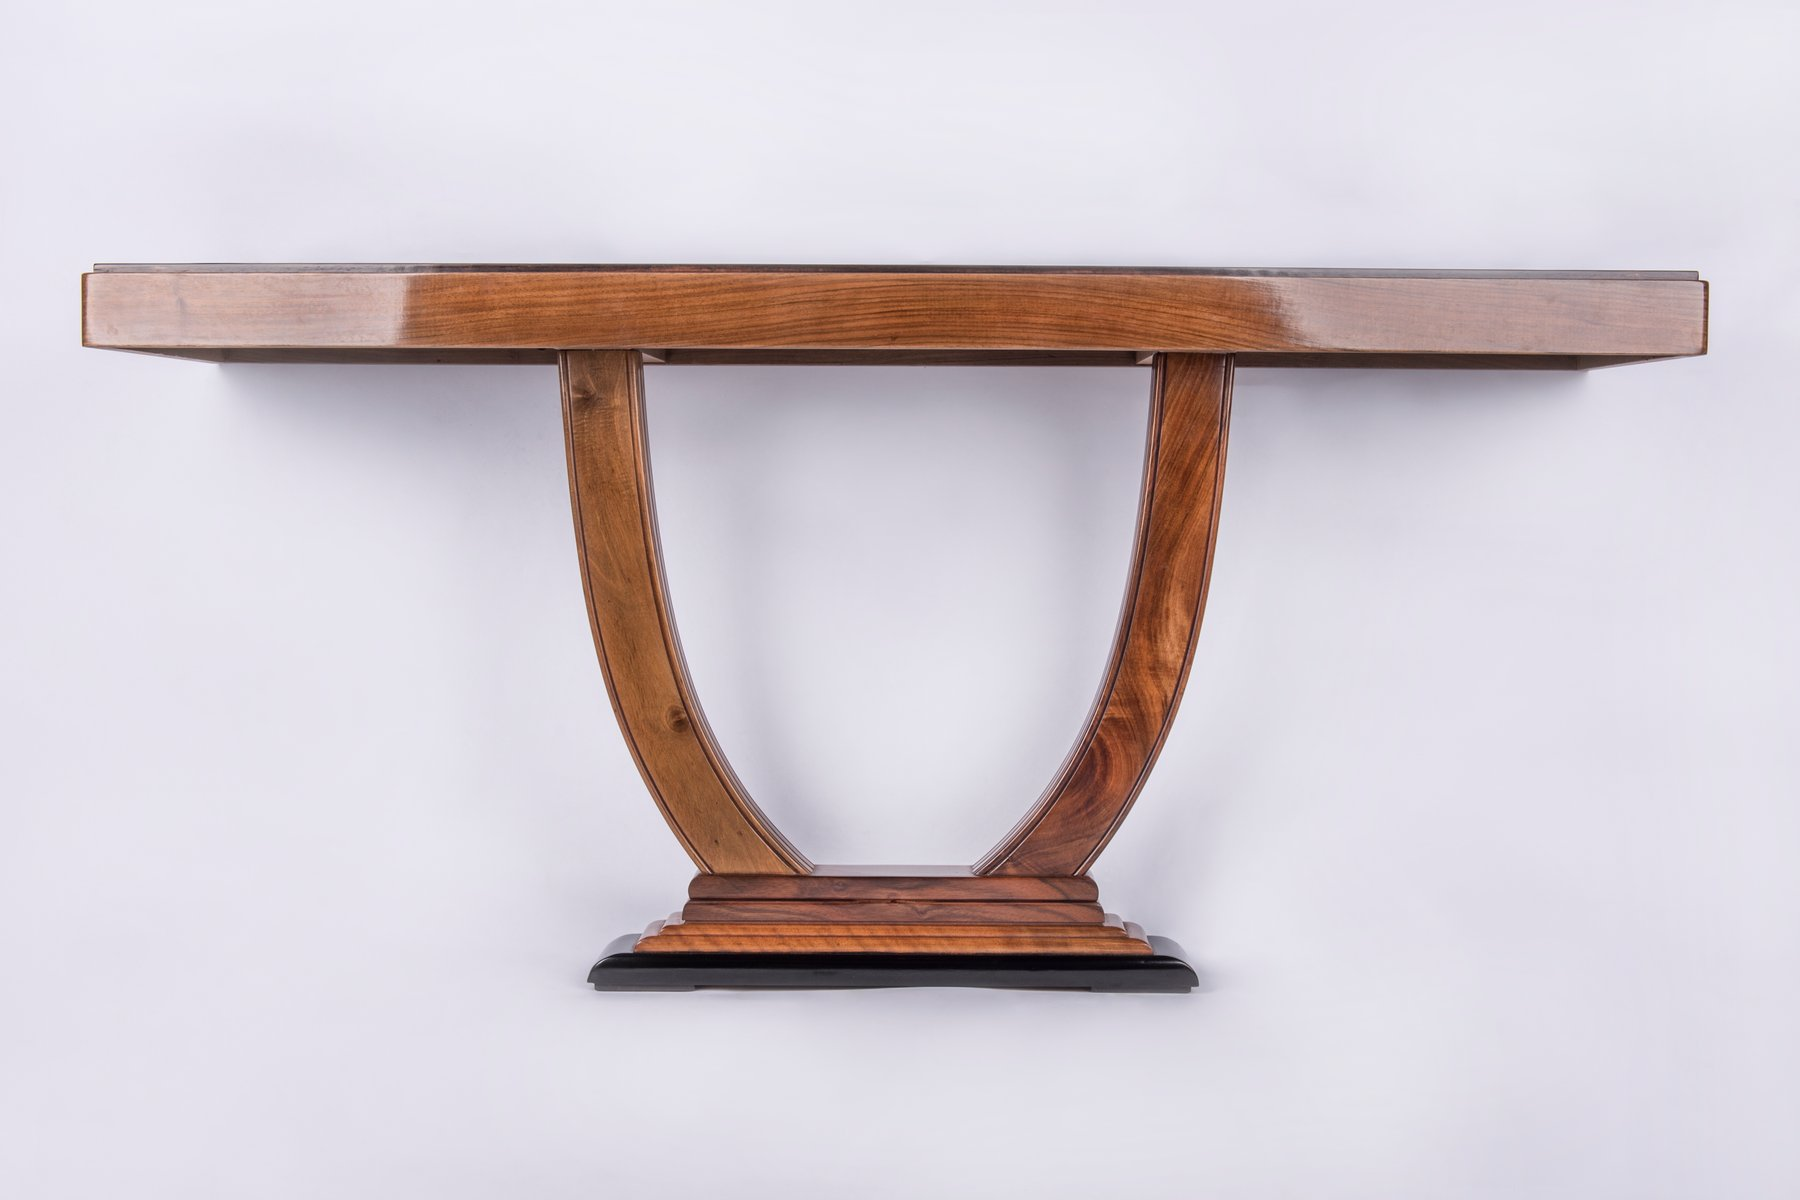 Art deco console table 1930s for sale at pamono for Table de nuit art deco